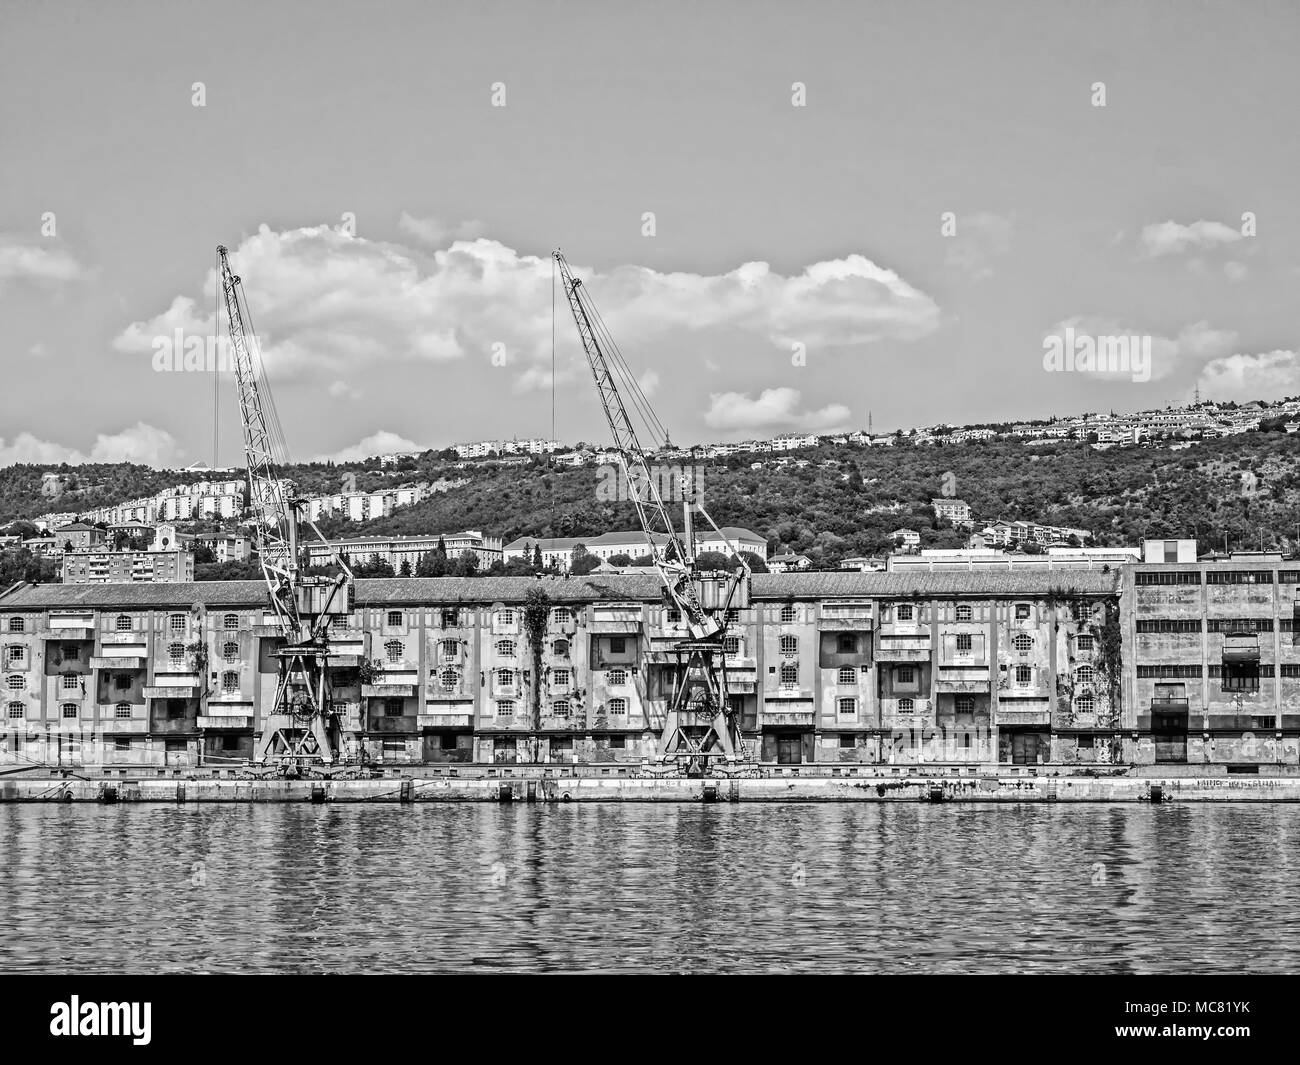 Old warehouse and cranes in the port of Rijeka, Croatia, in monochrome - Stock Image